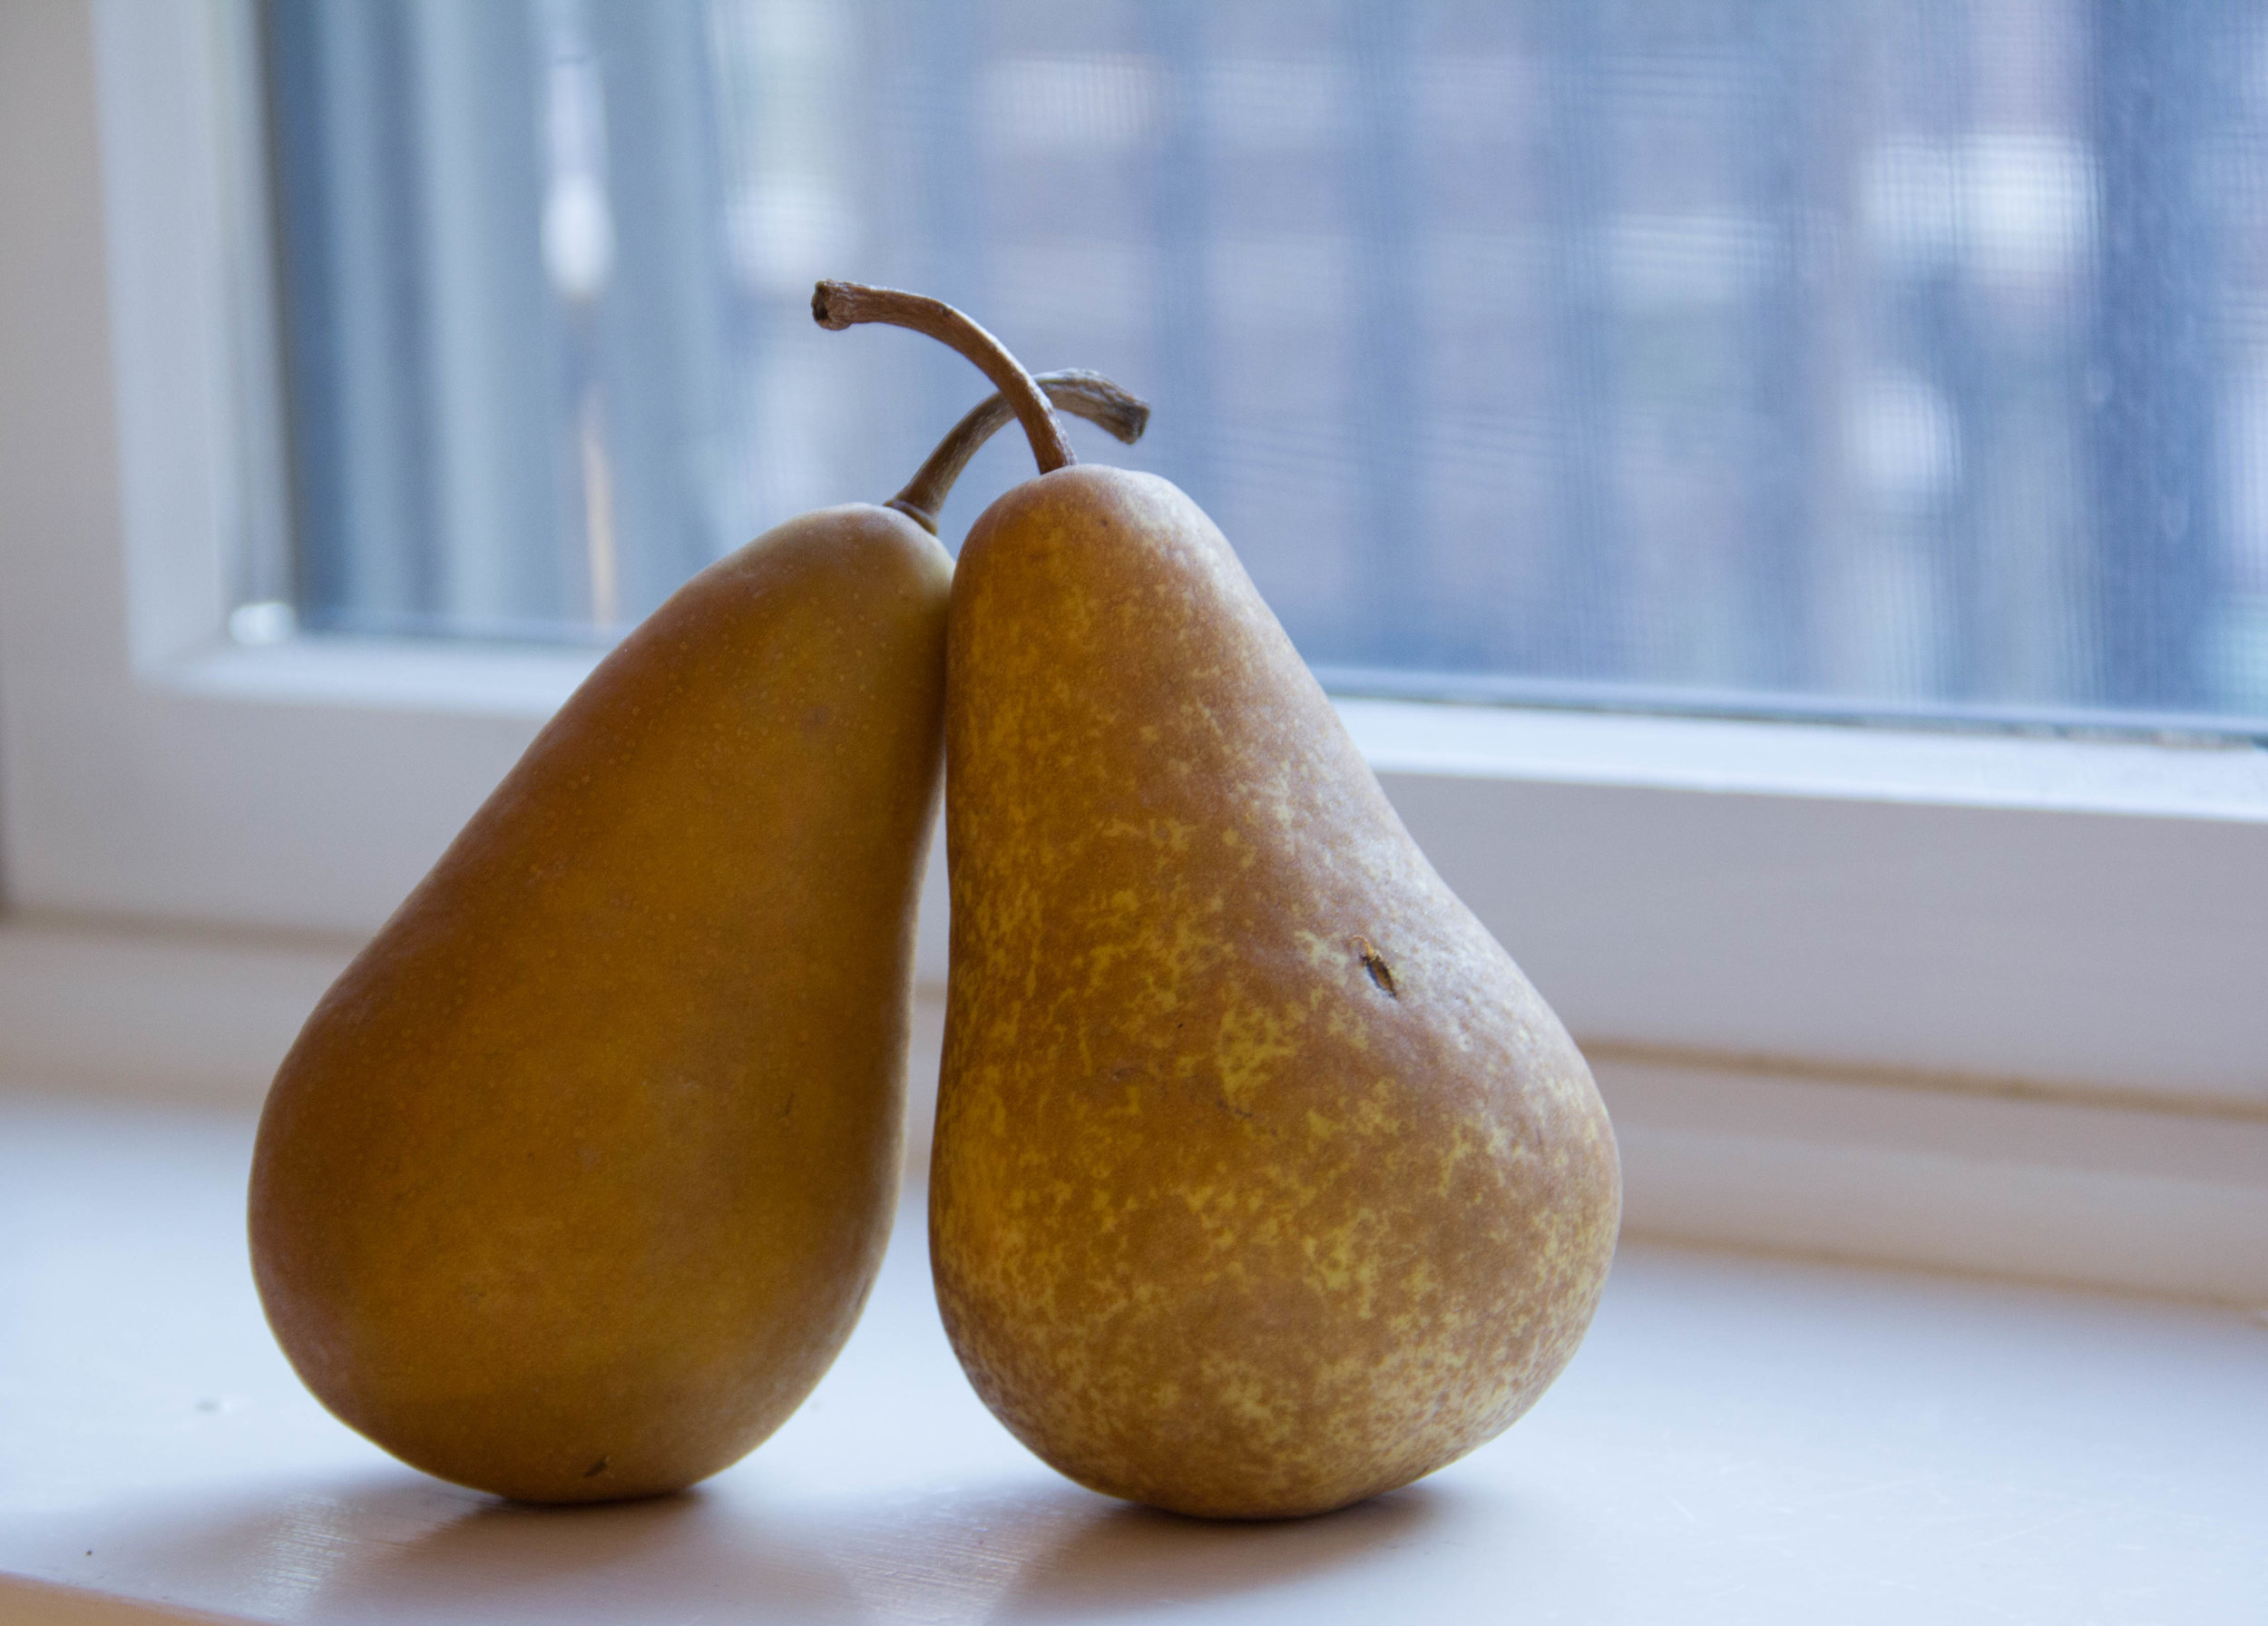 Just two pears, hanging out by the window.